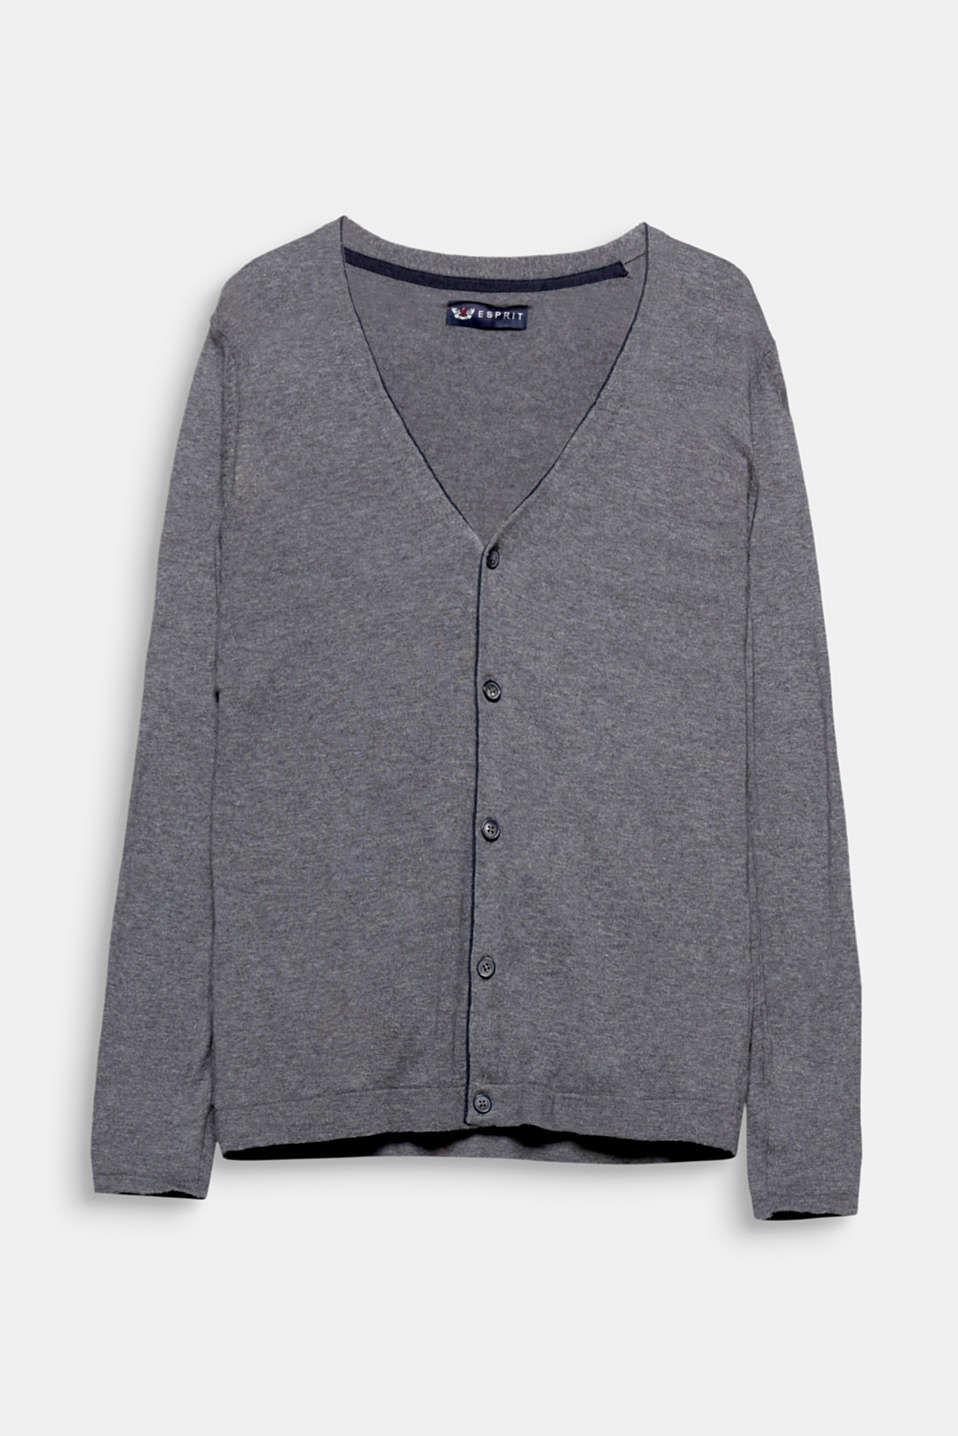 Made of Australian cotton: lightweight, premium cardigan with striped elbows and piped edges